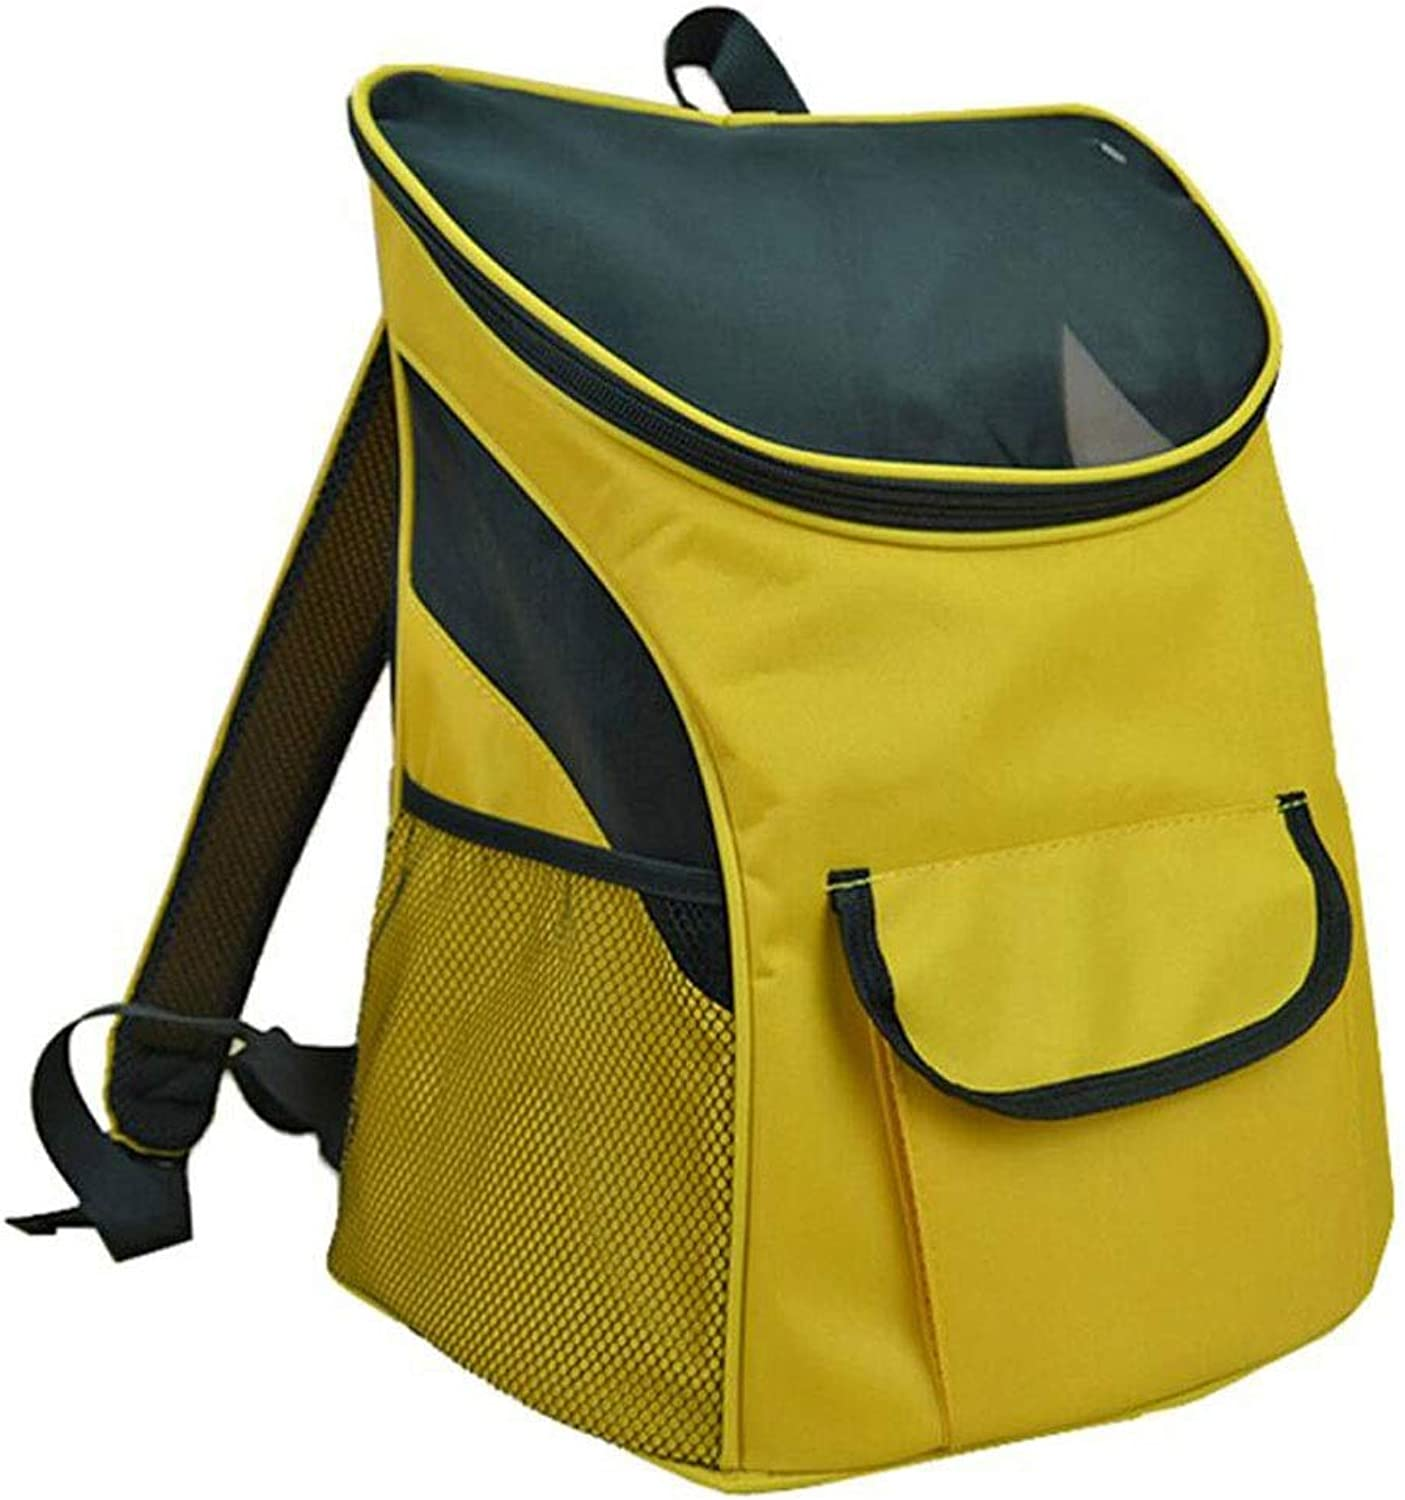 FJH Breathable Pet Box Cage Cat Dog Backpack Portable Travel Transport Car Out Of Consignment 4 colors (color   Yellow, Size   36  27  40cm)